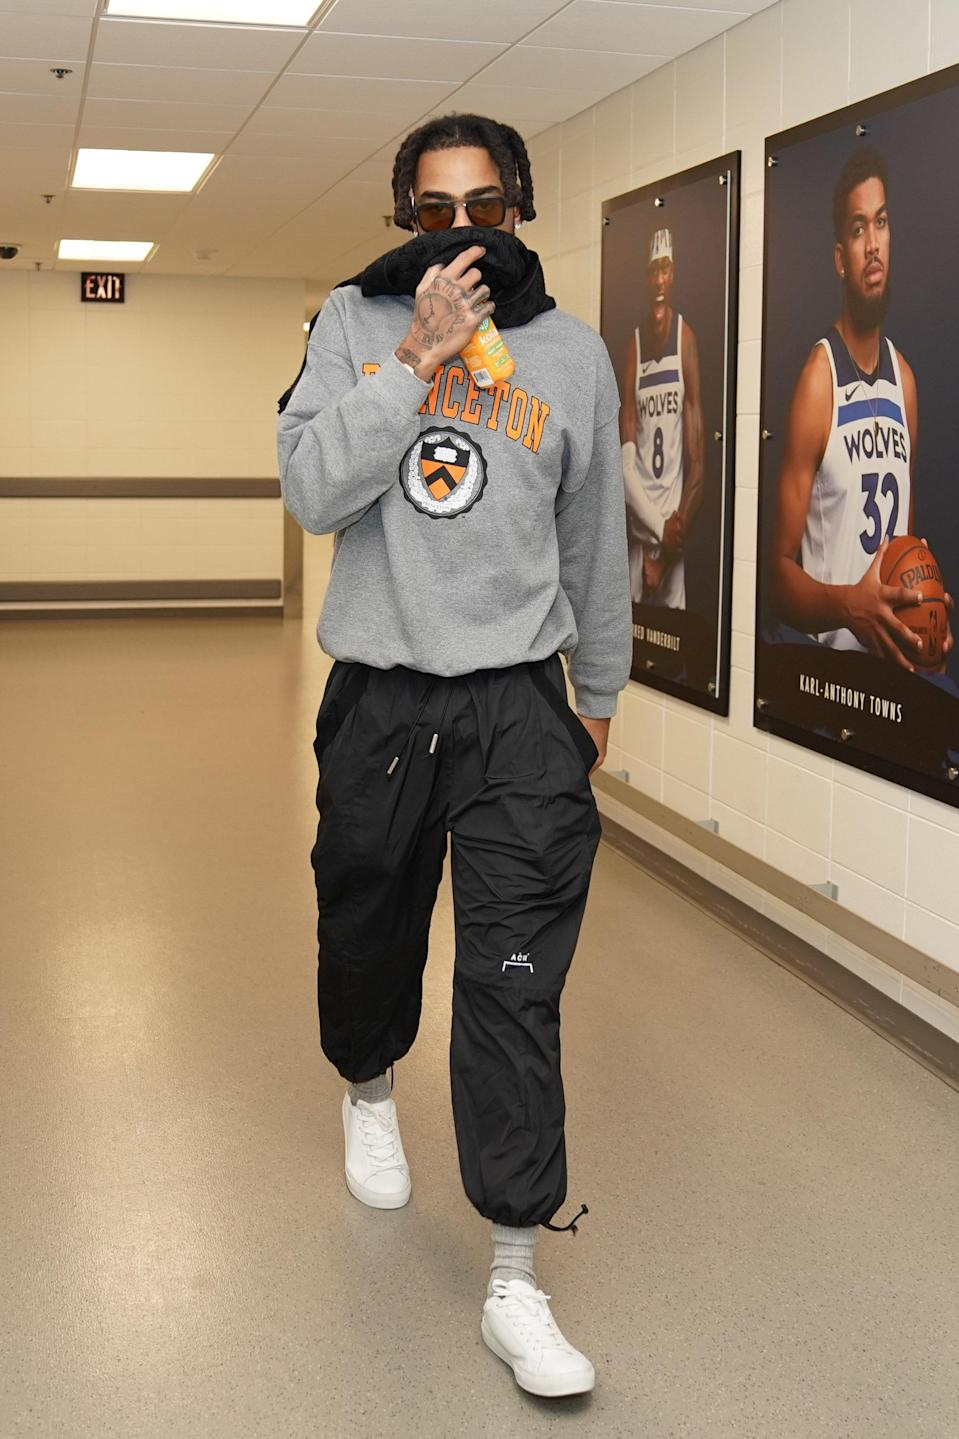 D'Angelo Russell of the Minnesota Timberwolves arrives to a game against the Denver Nuggets in Minneapolis, January 3, 2021.